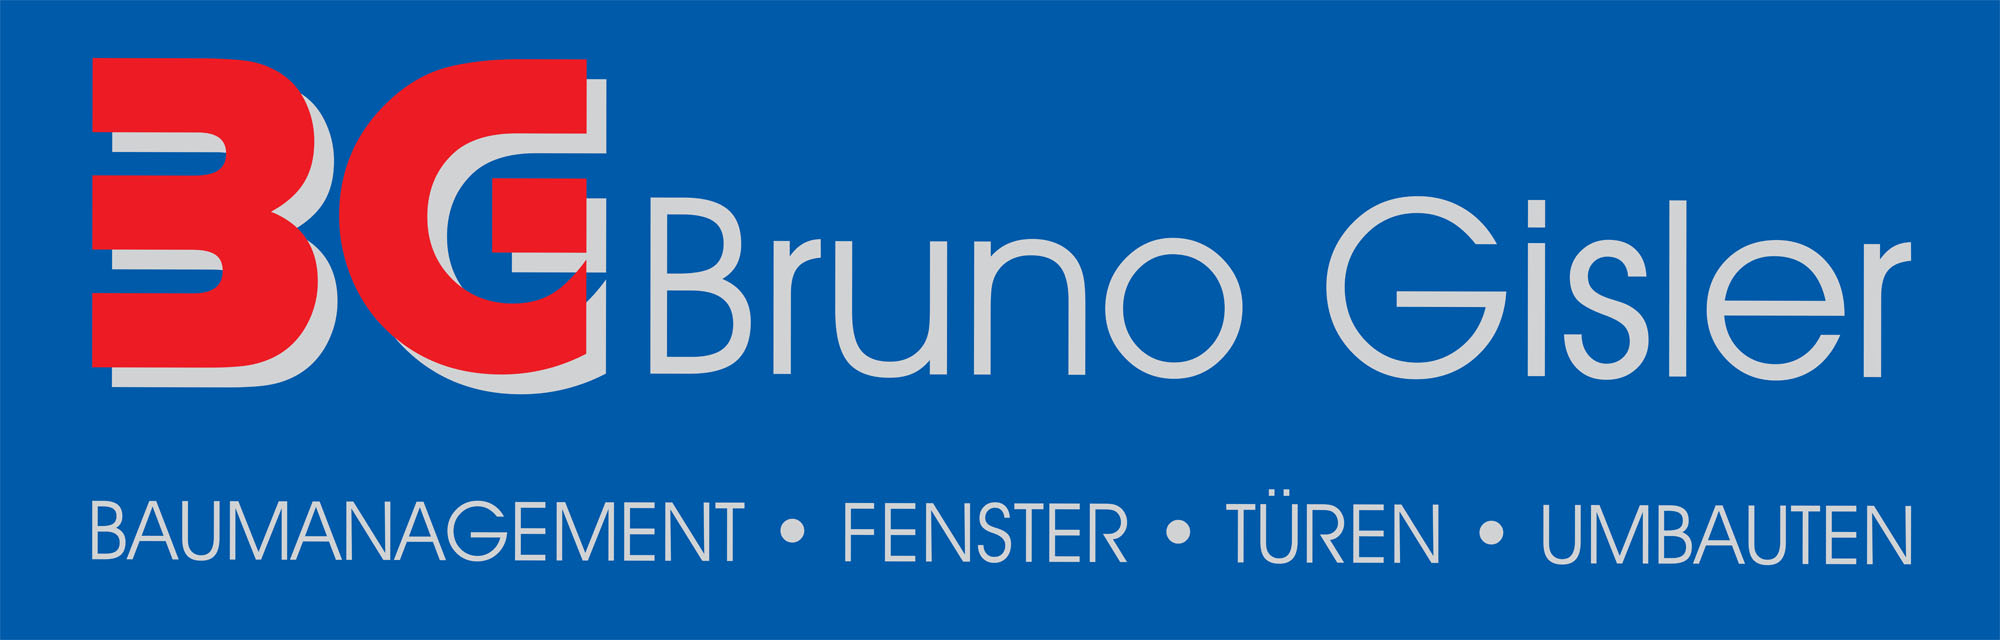 baupartner - BG Bruno Gisler Baumanagement in Engi